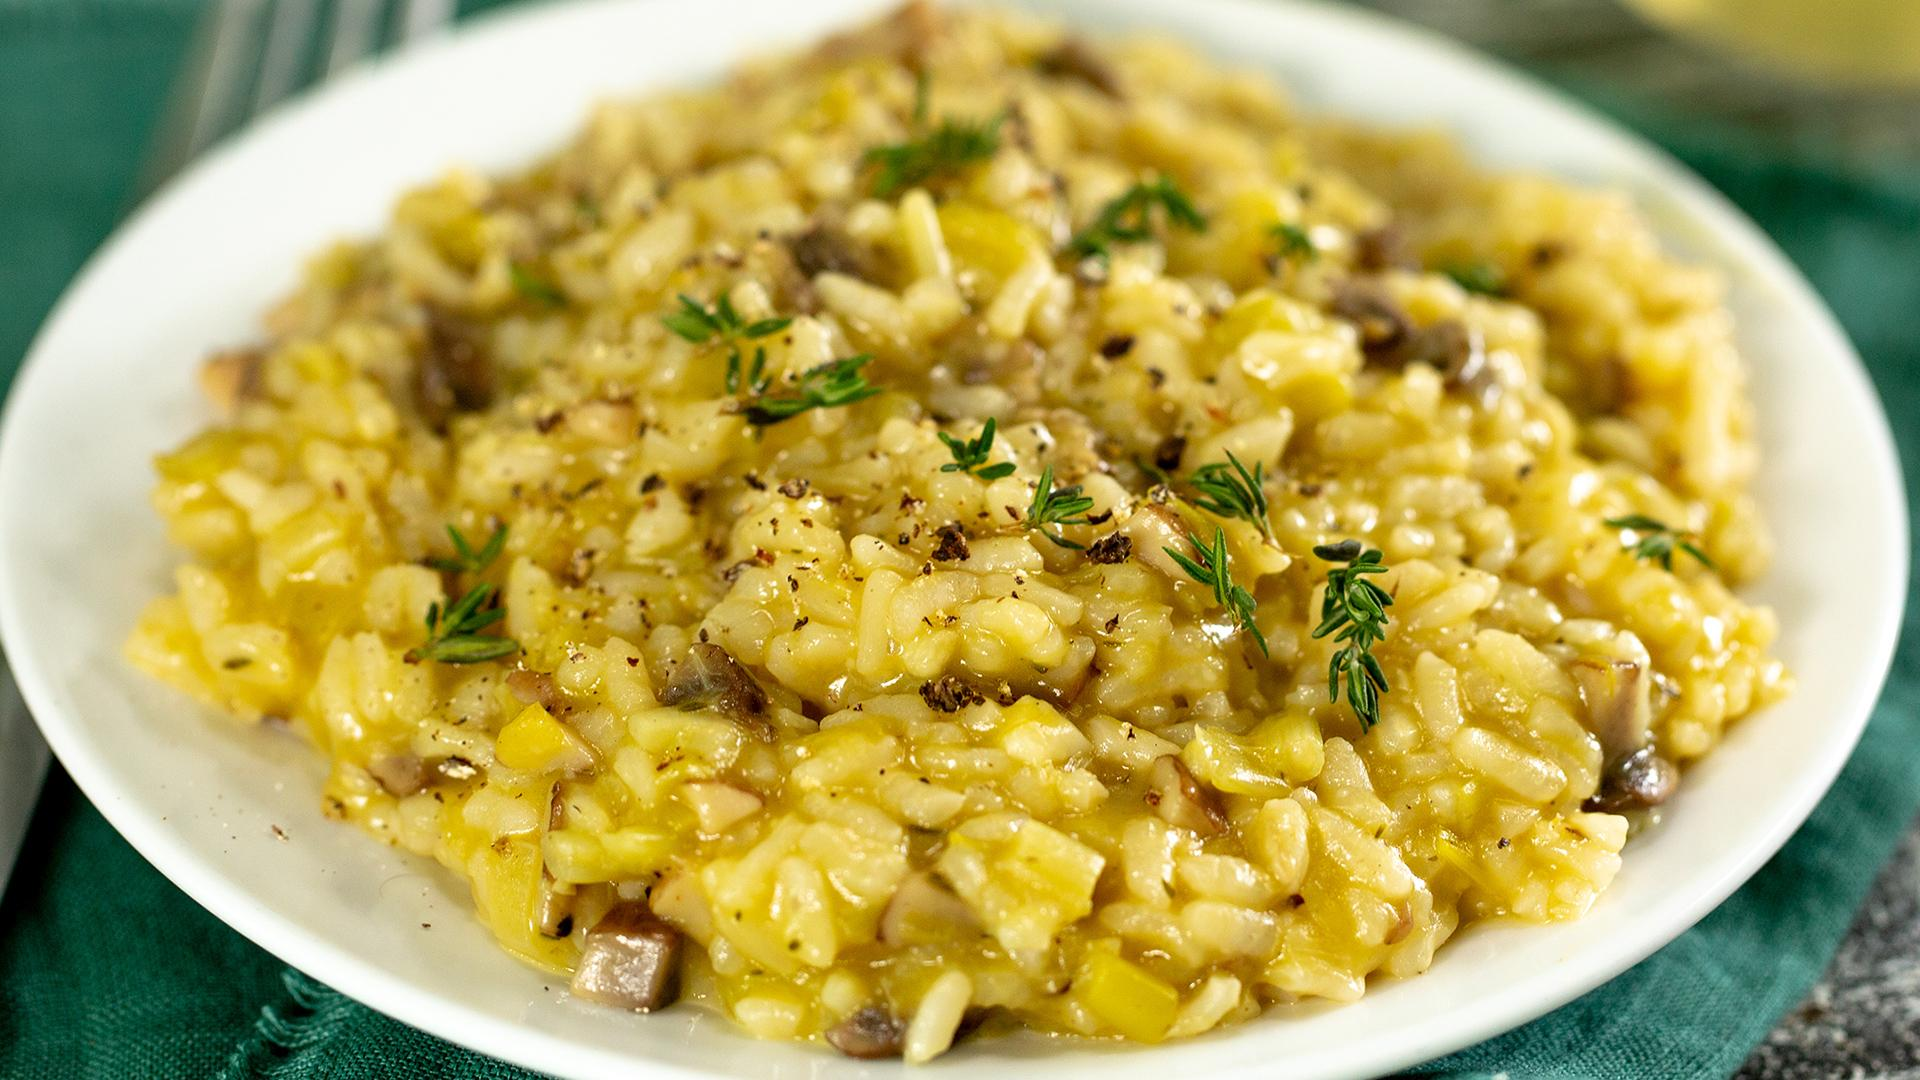 How to Make Instant Pot Vegan Mushroom Risotto